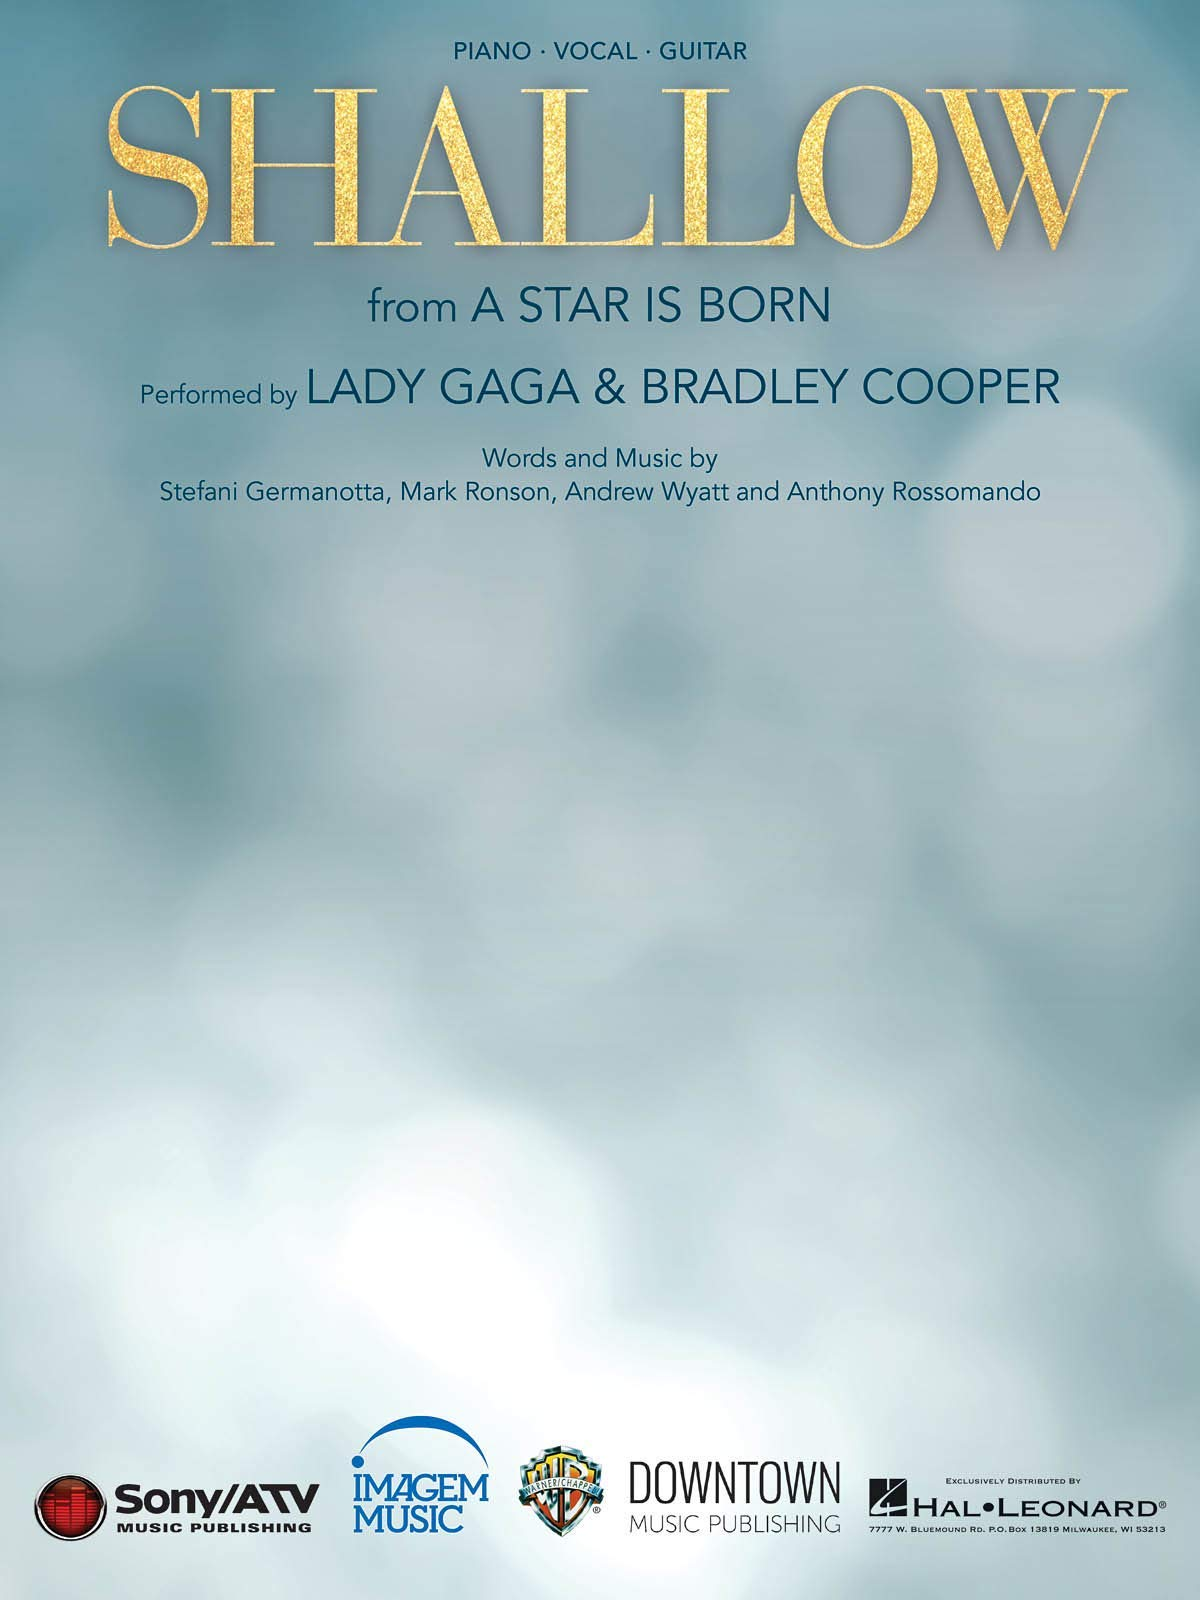 Lady Gaga - Shallow (from A Star Is Born) - Piano/Vocal/Guitar Sheet Music Single